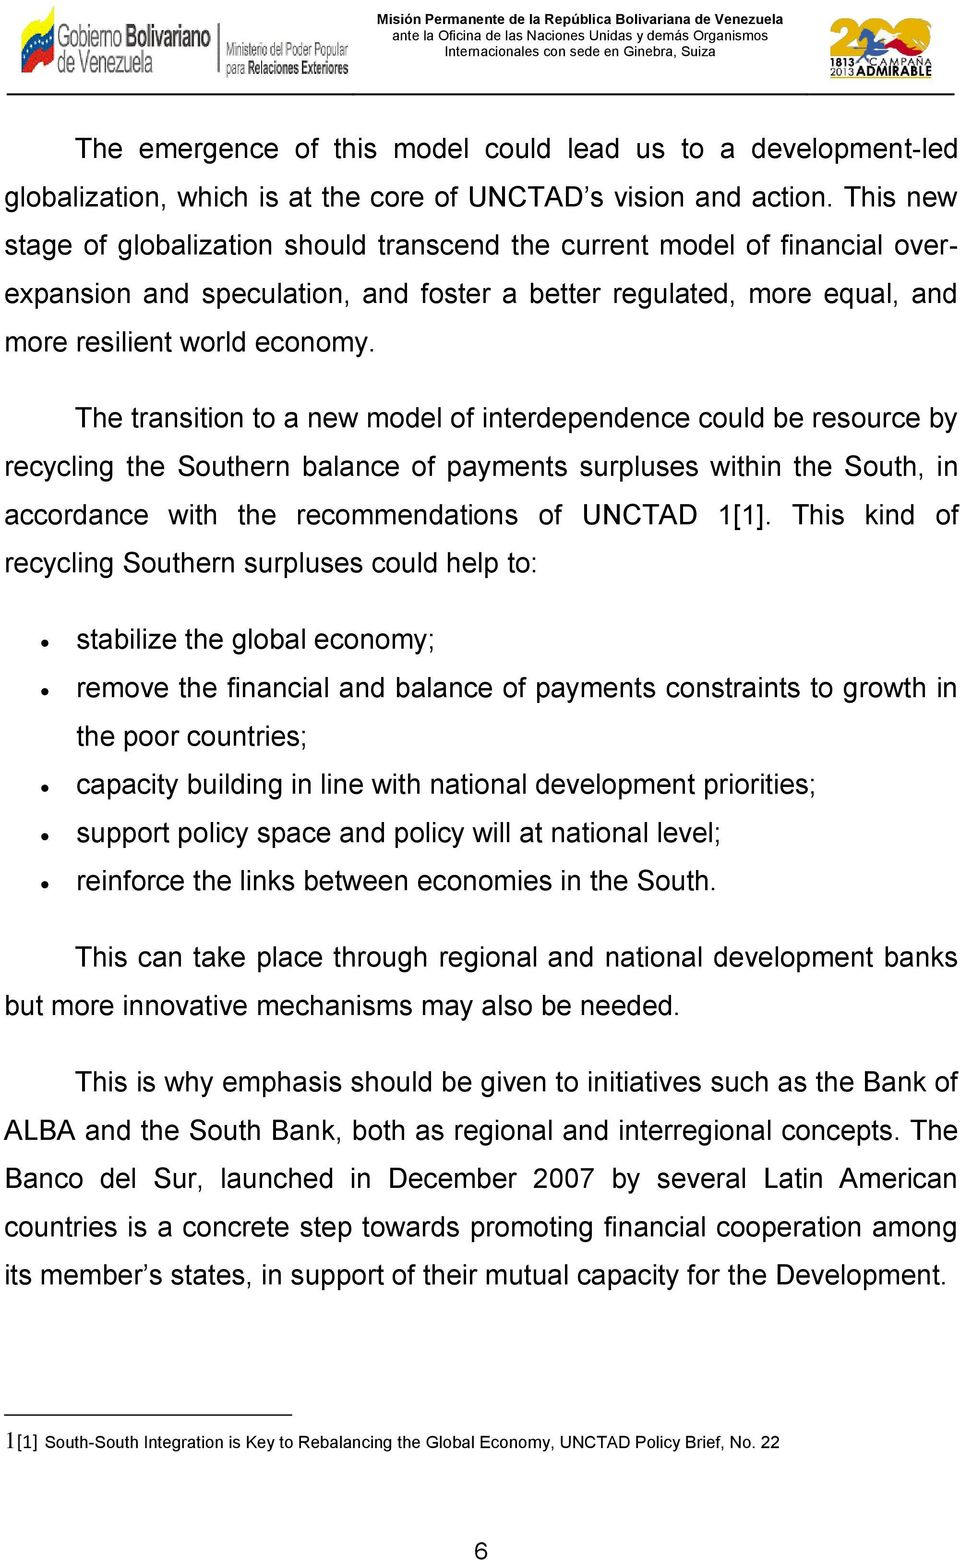 The transition to a new model of interdependence could be resource by recycling the Southern balance of payments surpluses within the South, in accordance with the recommendations of UNCTAD 1[1].